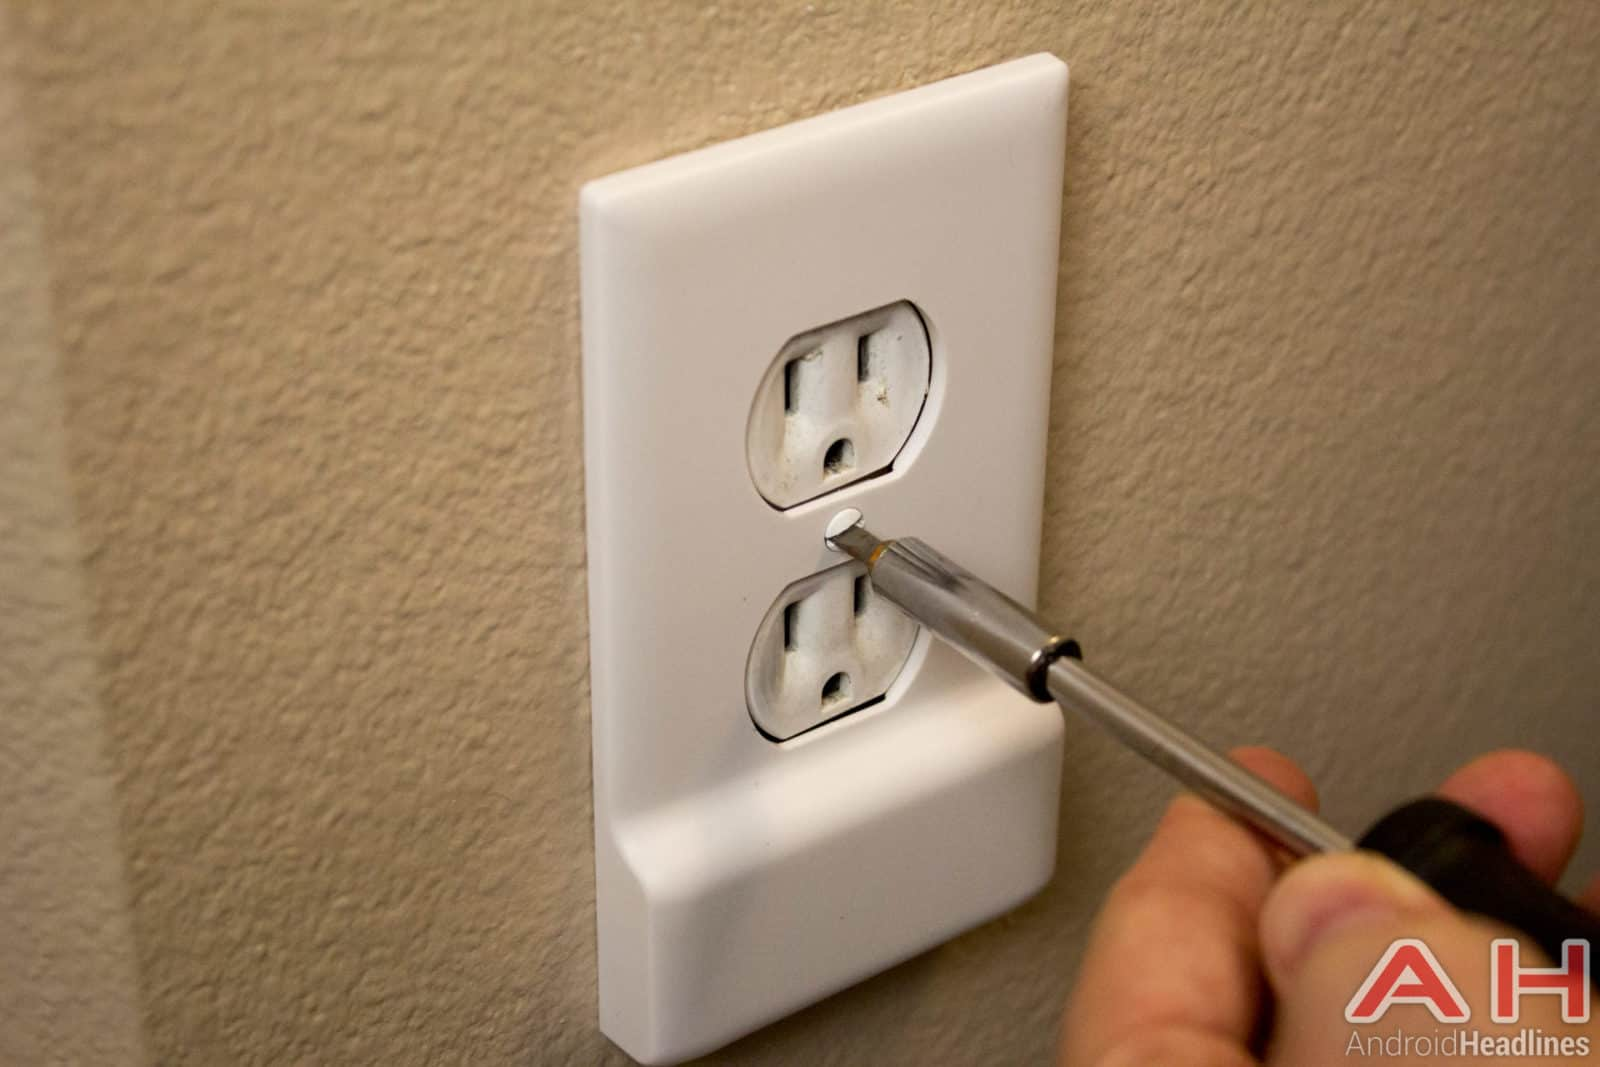 SnapPower-USB-Outlet-Cover-AH-09